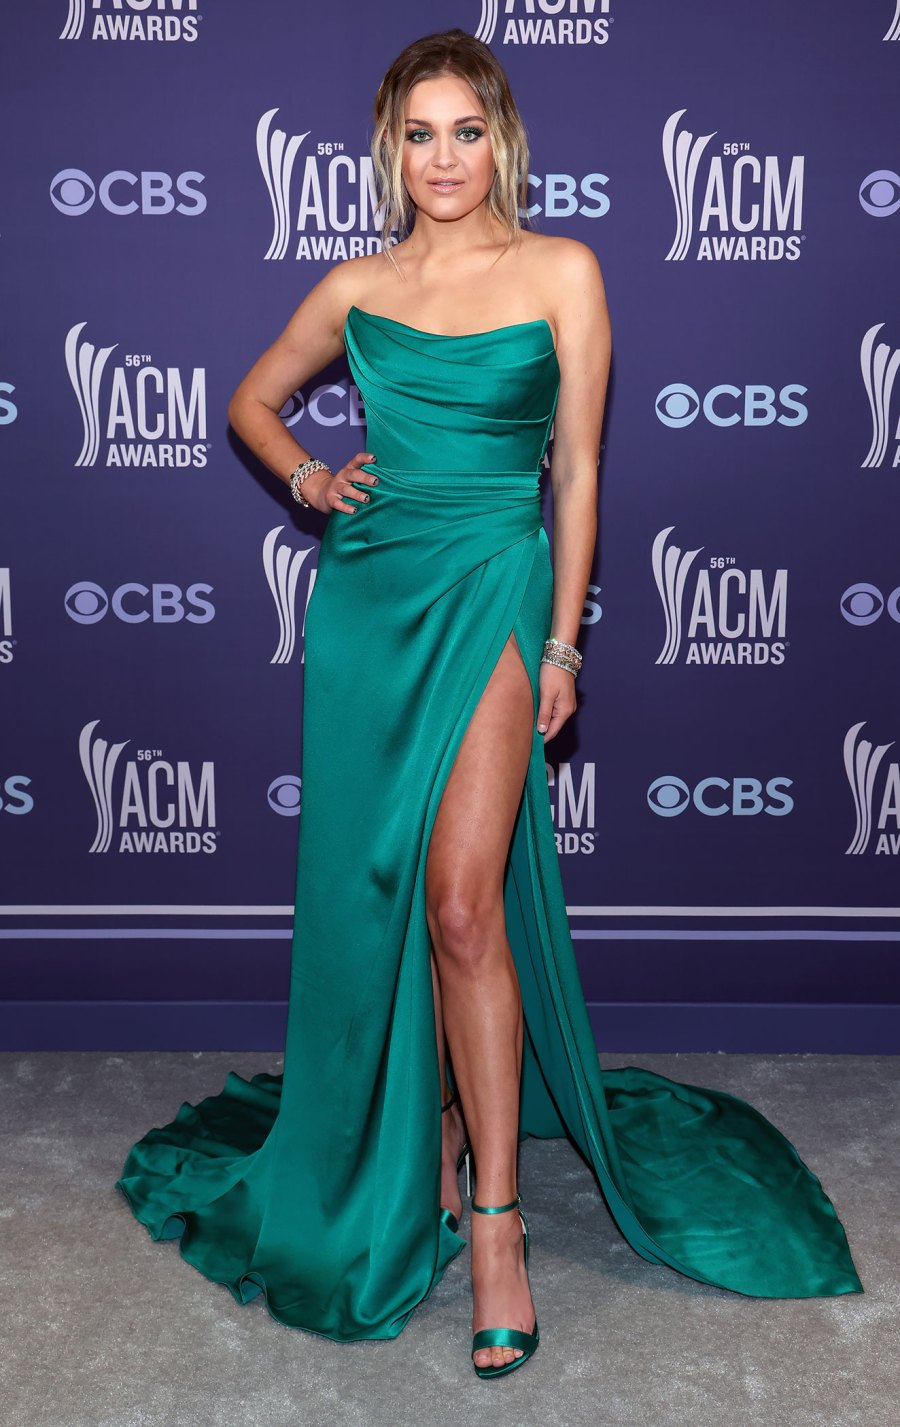 Academy of Country Music Awards Red Carpet Arrivals - Kelsea Ballerini